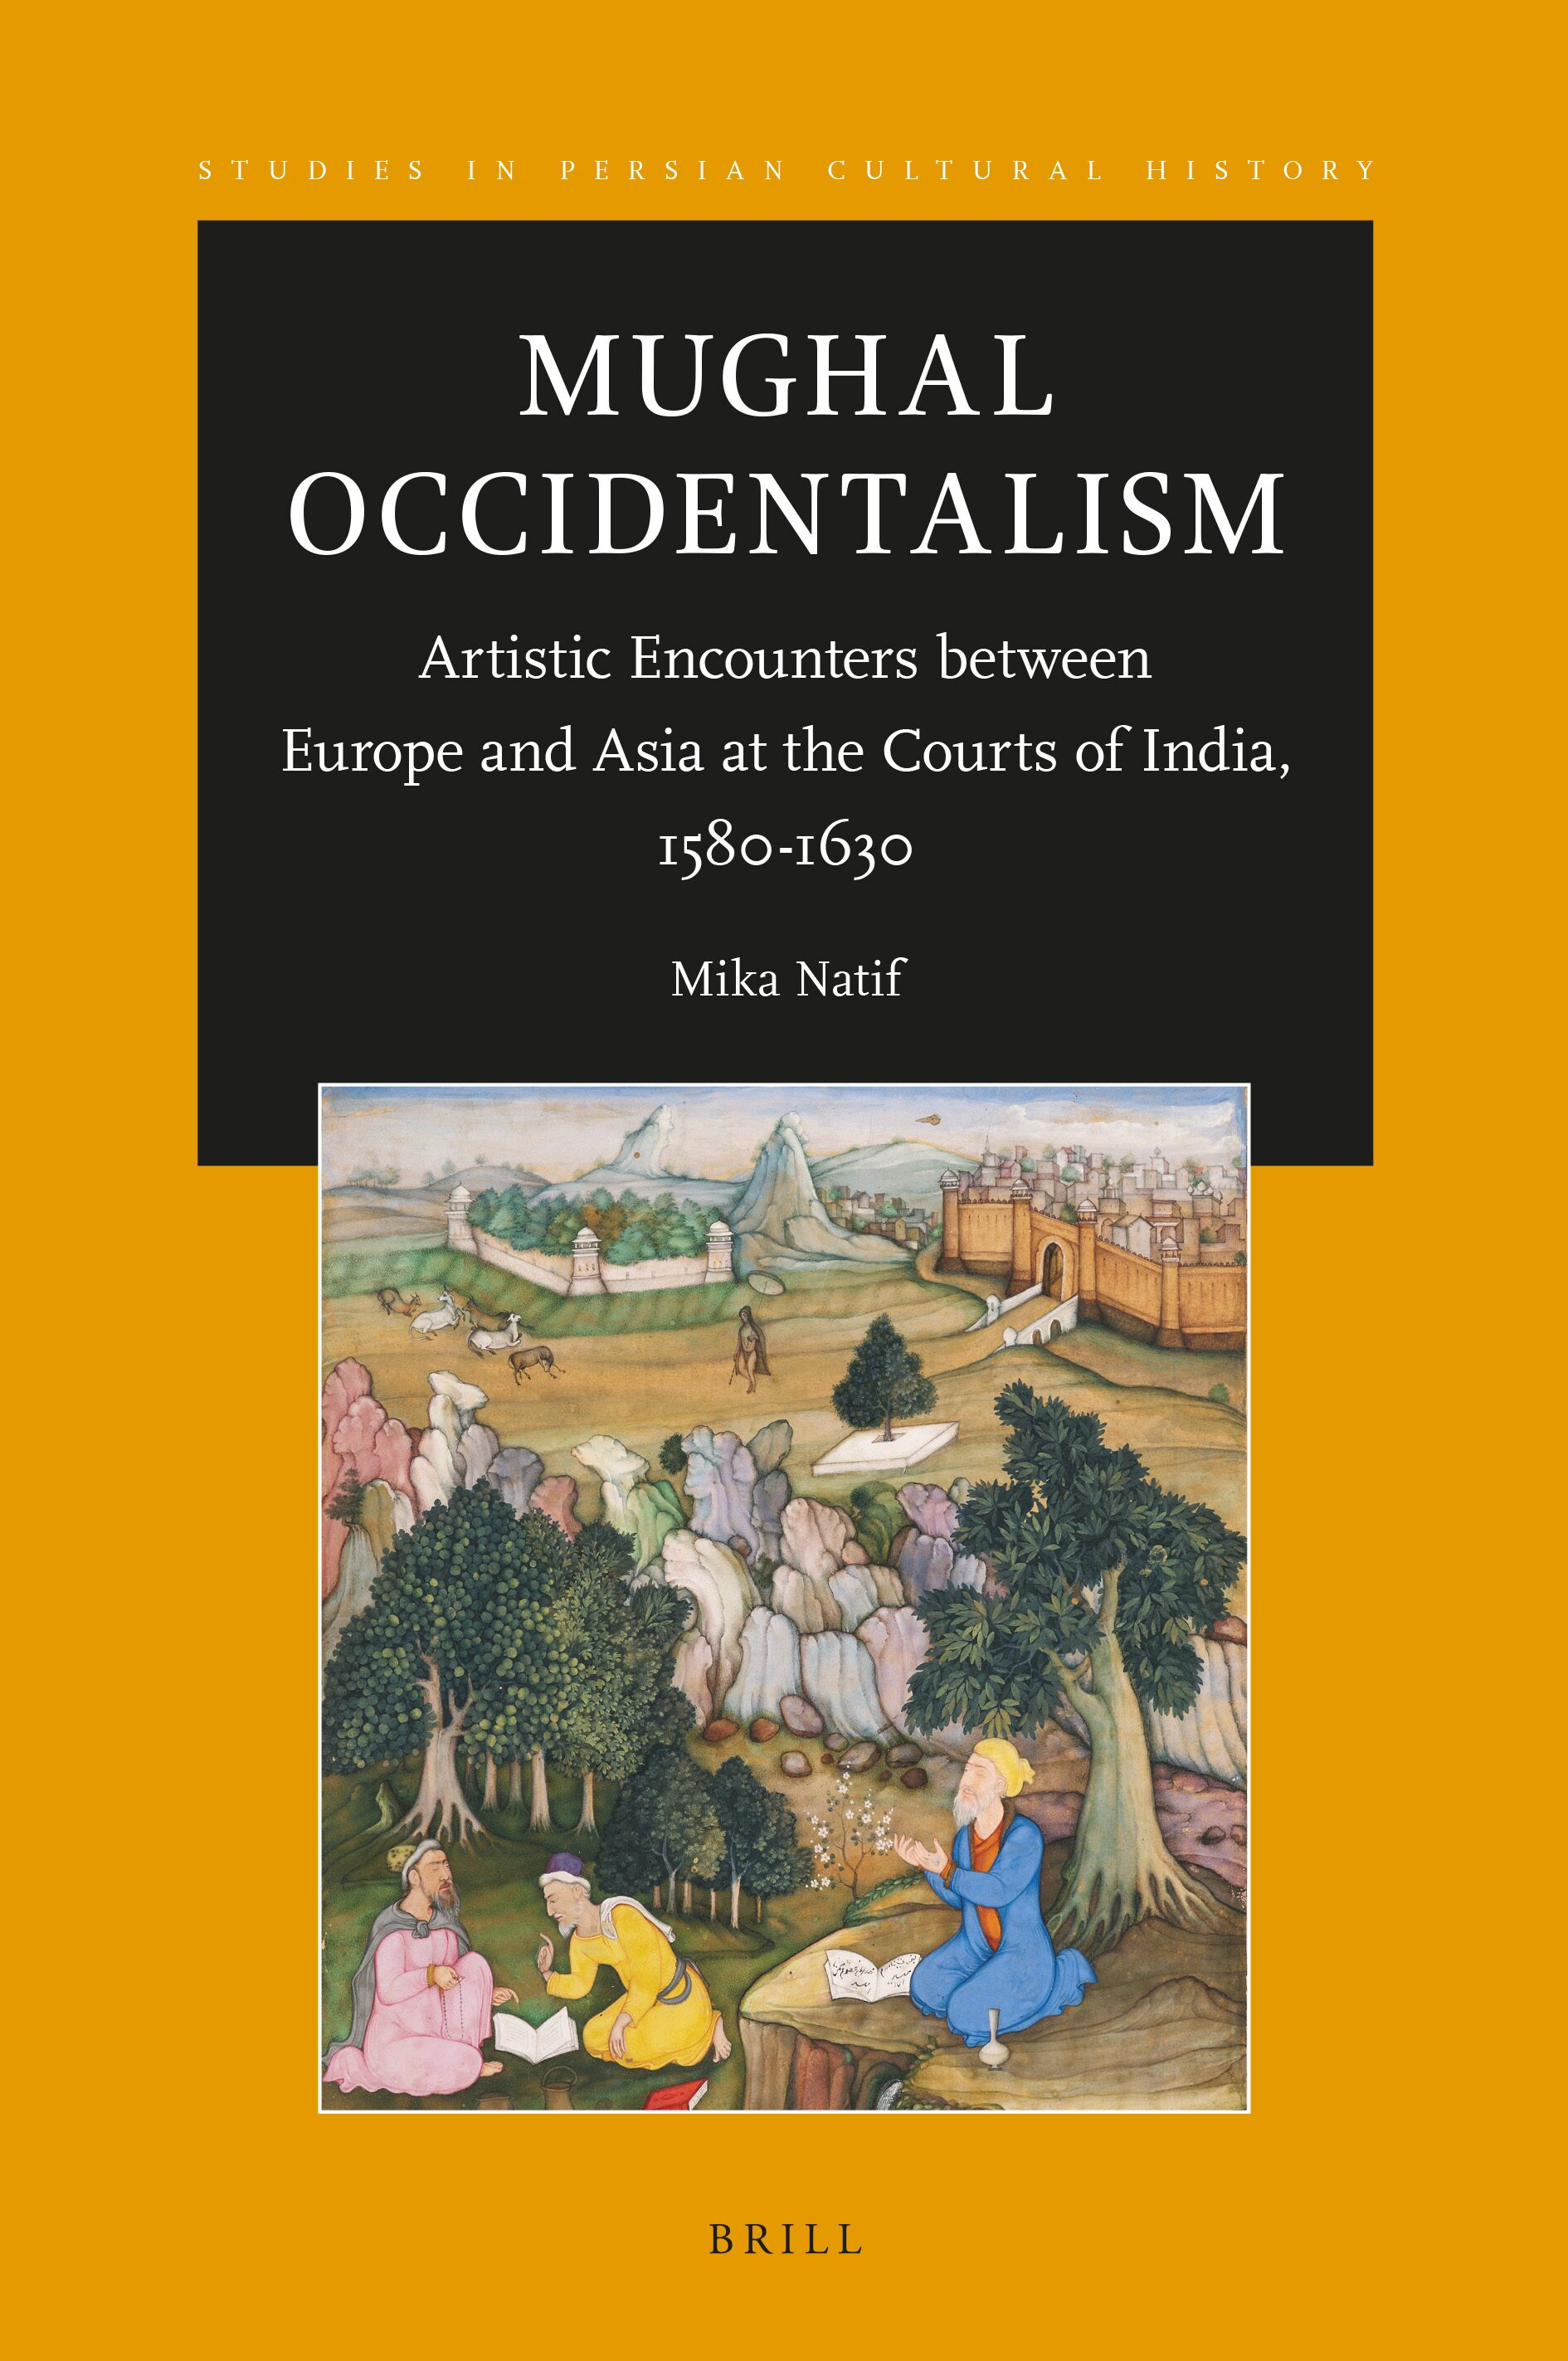 Introduction In Mughal Occidentalism